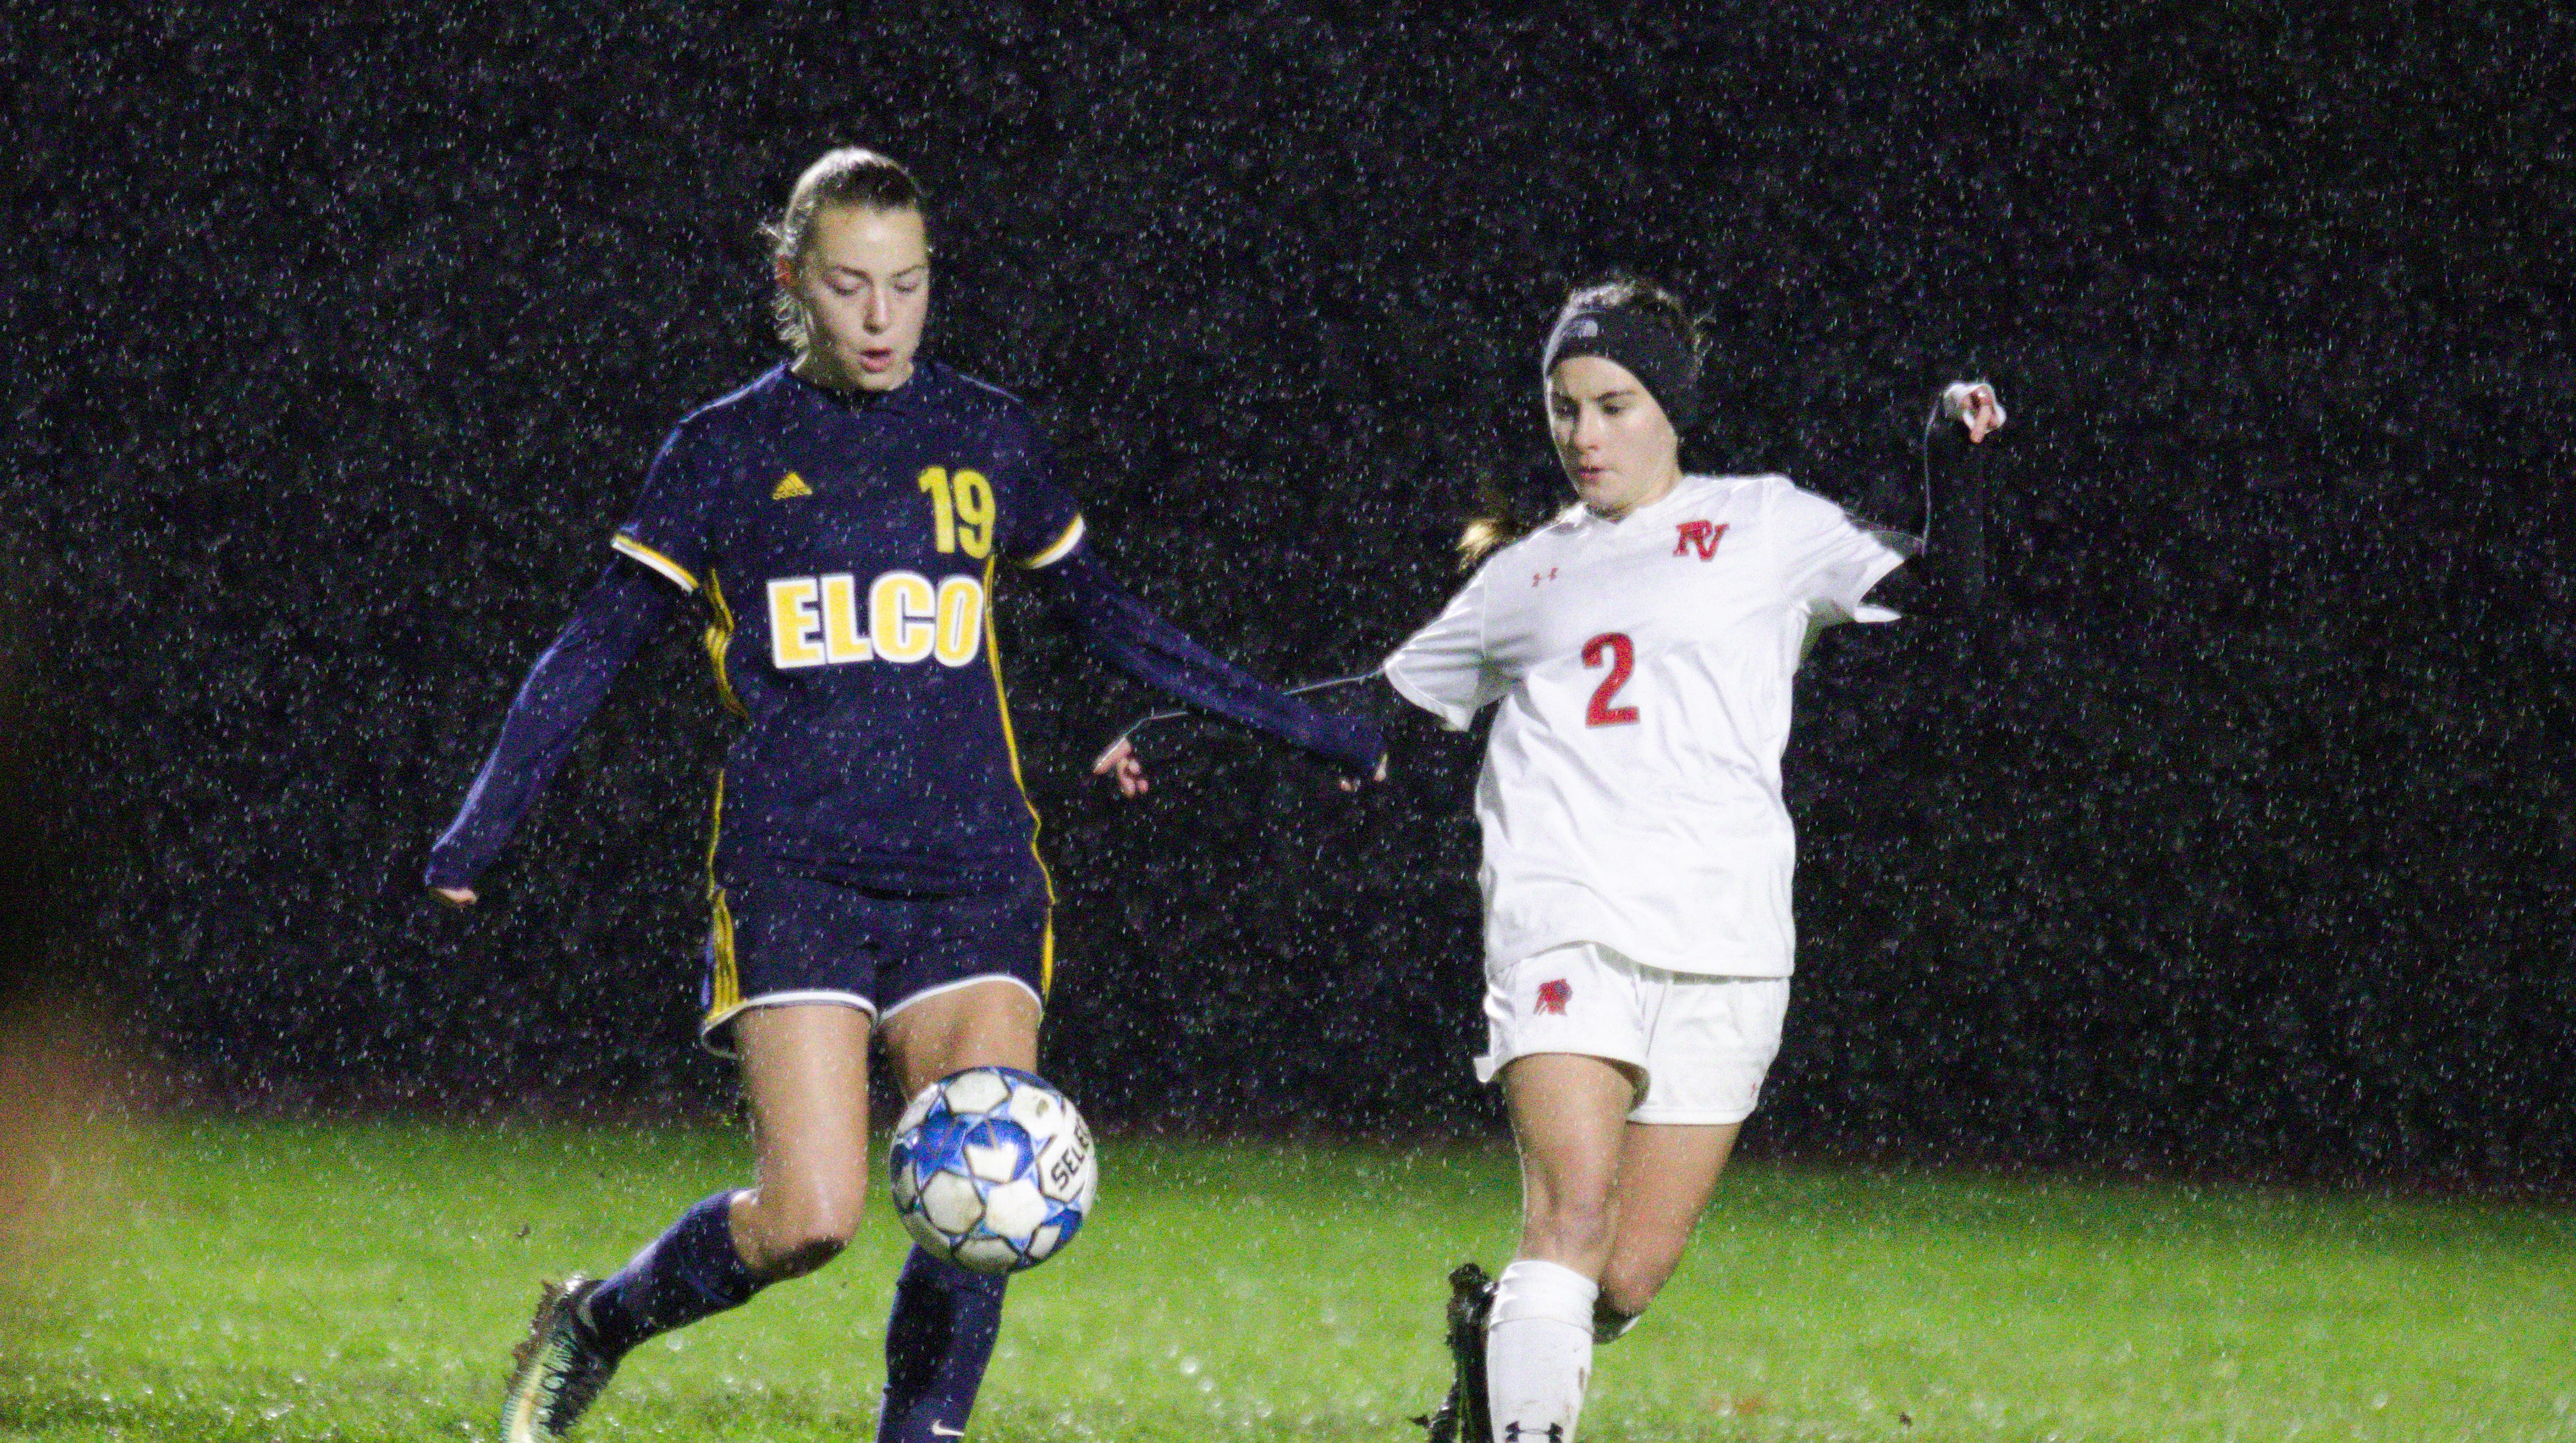 Elco's Natalie Swingholm keeps the ball away from a Pequea Valley defender during the Raiders' 7-0 district playoff win on Saturday night.